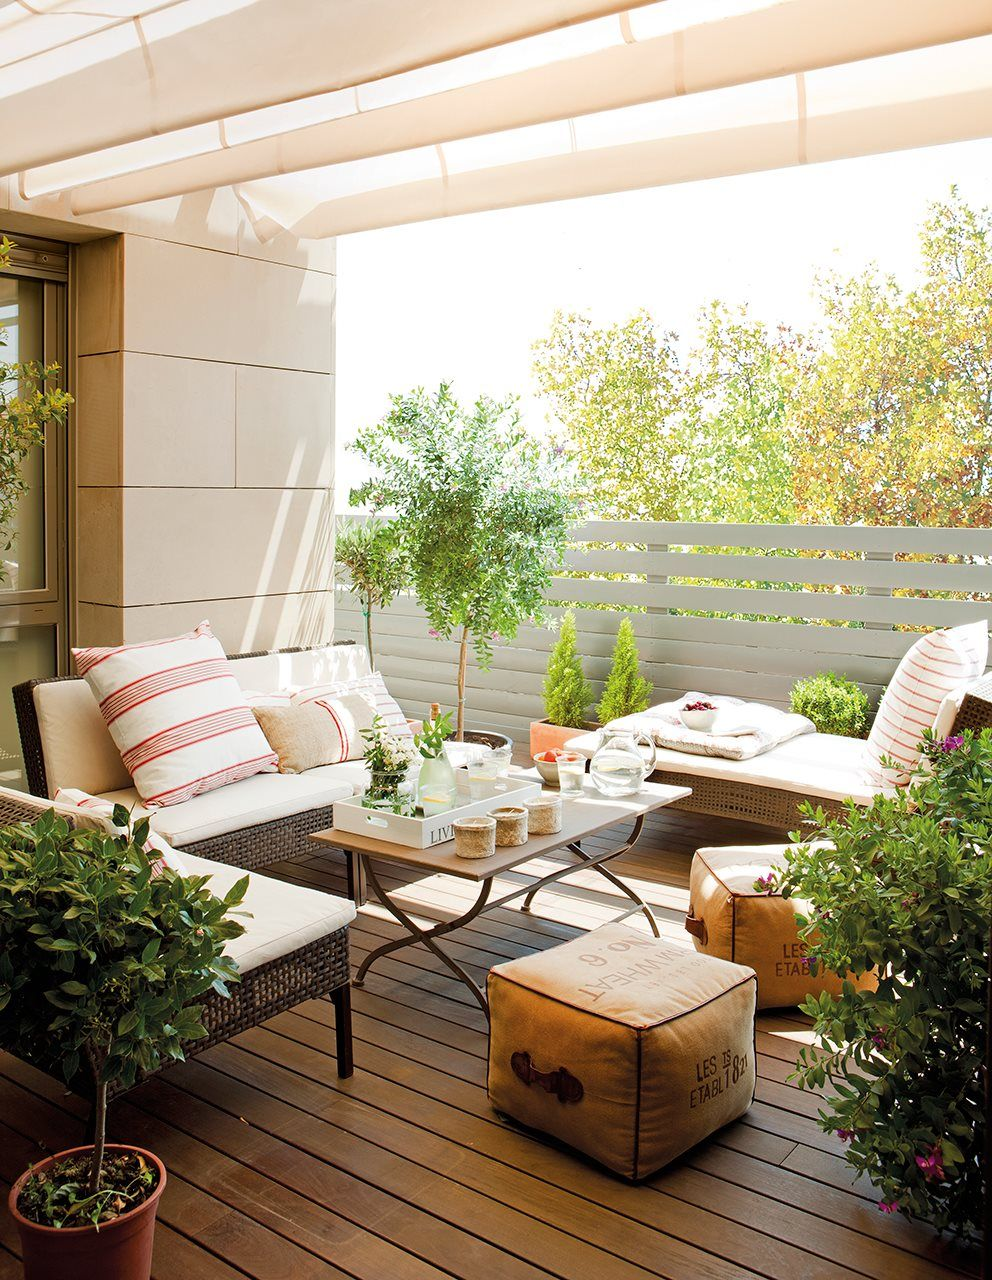 Balcony gardening living small condo owners utilize outdoor space - Outdoor Living